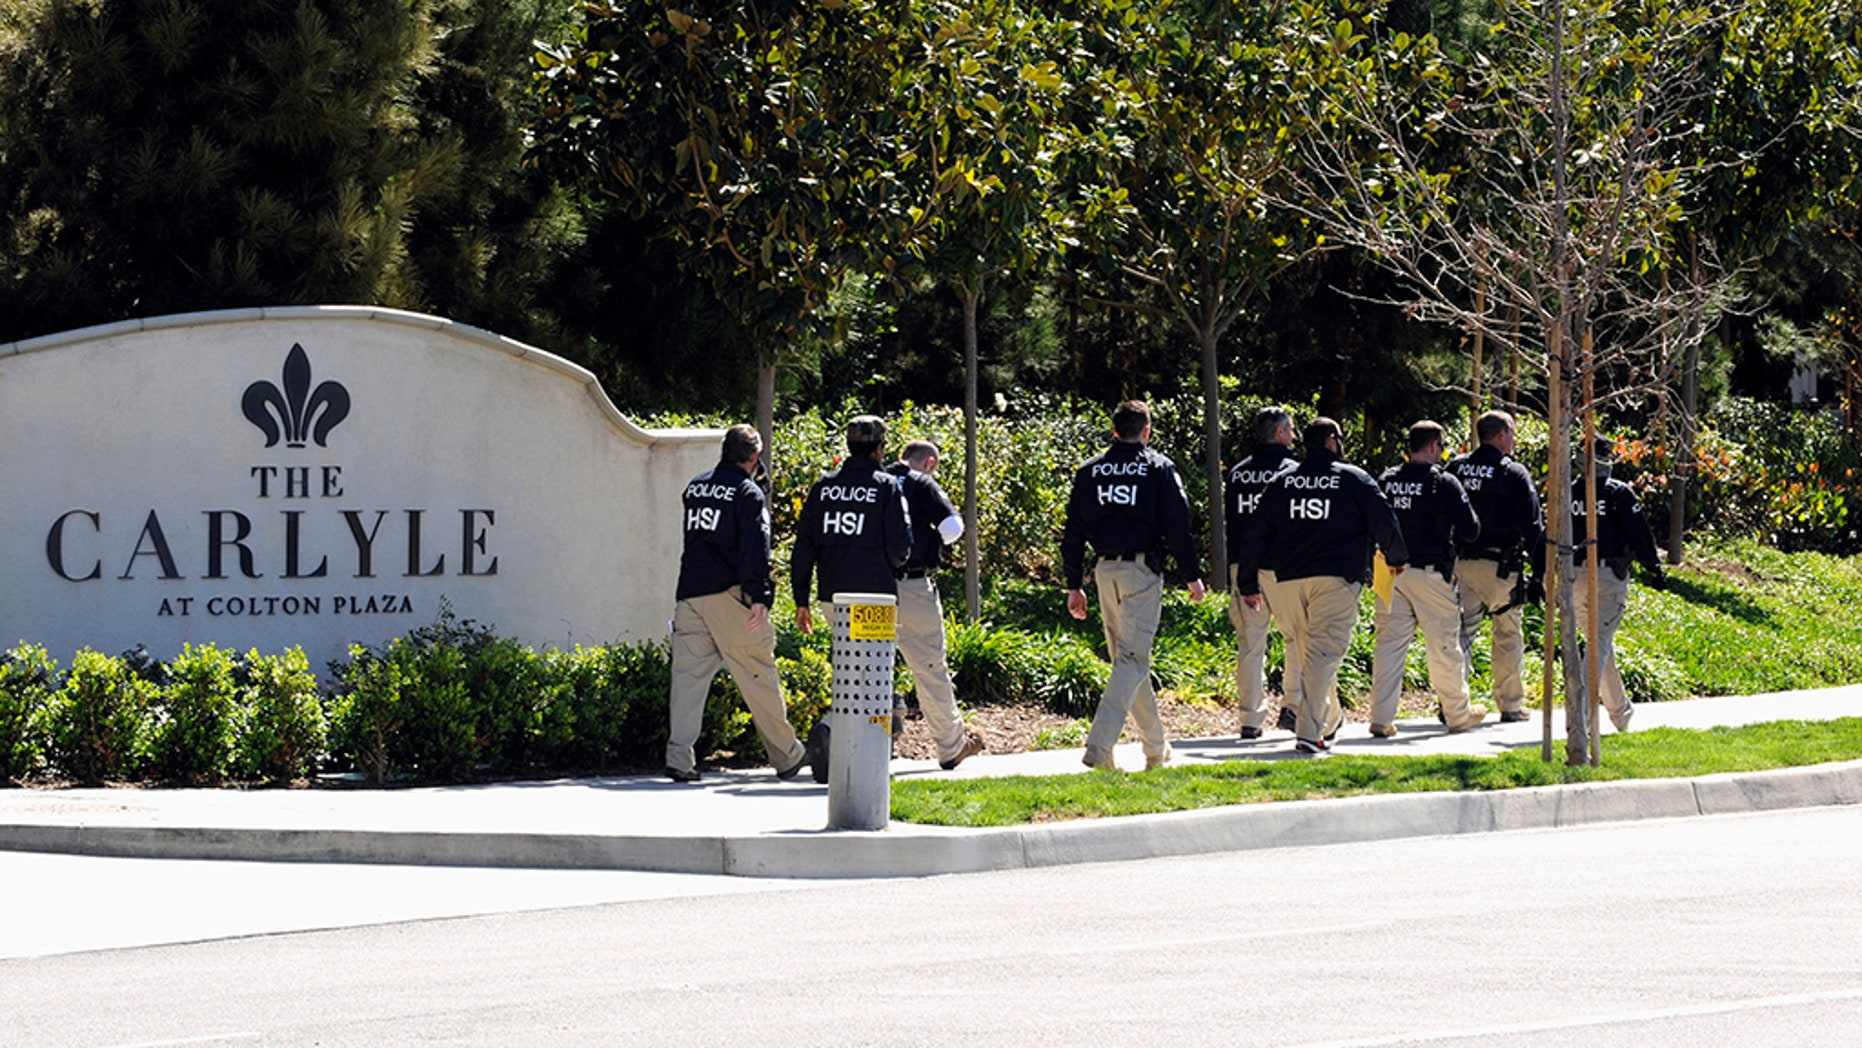 """Federal agents walk past Carlyle Apartments, a location suspected of involvement in """"maternity tourism"""" schemes, in Irvine March 3, 2015. (REUTERS/Bob Riha Jr.)"""